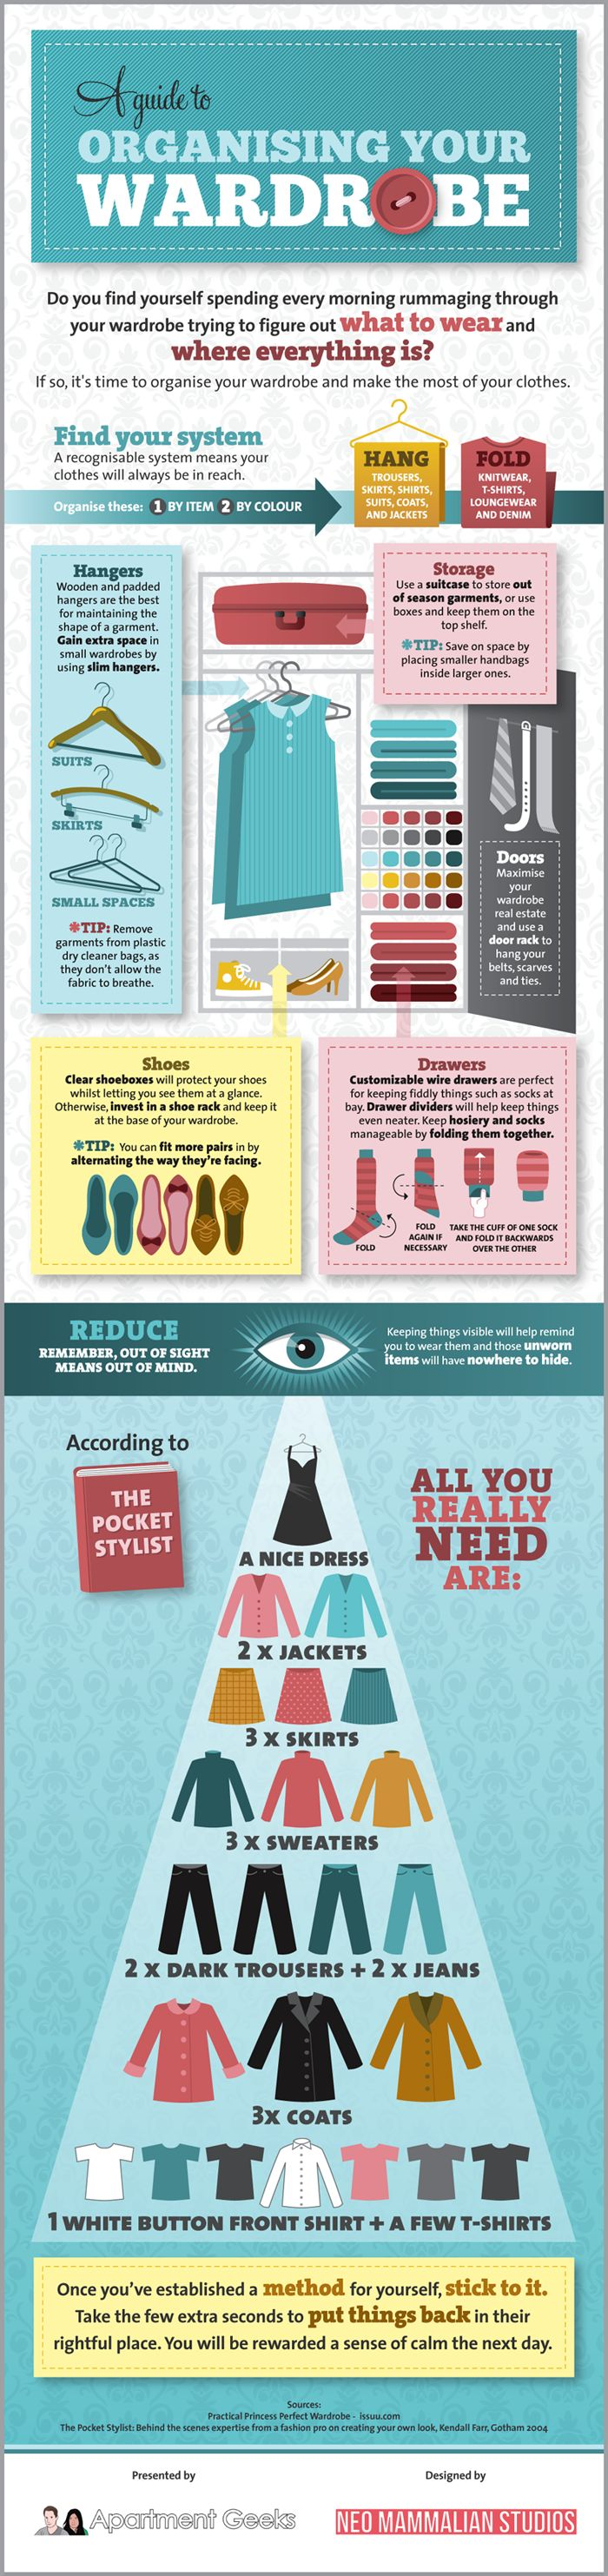 A guide to organizing your wardrobe [Infographic]...I love to have an organized closet...and it is very important to me to know & have easy access to every item I own...I would really like to pare down what I do have though to mimic the very few items that at essentials on this list...what a fun project for me!